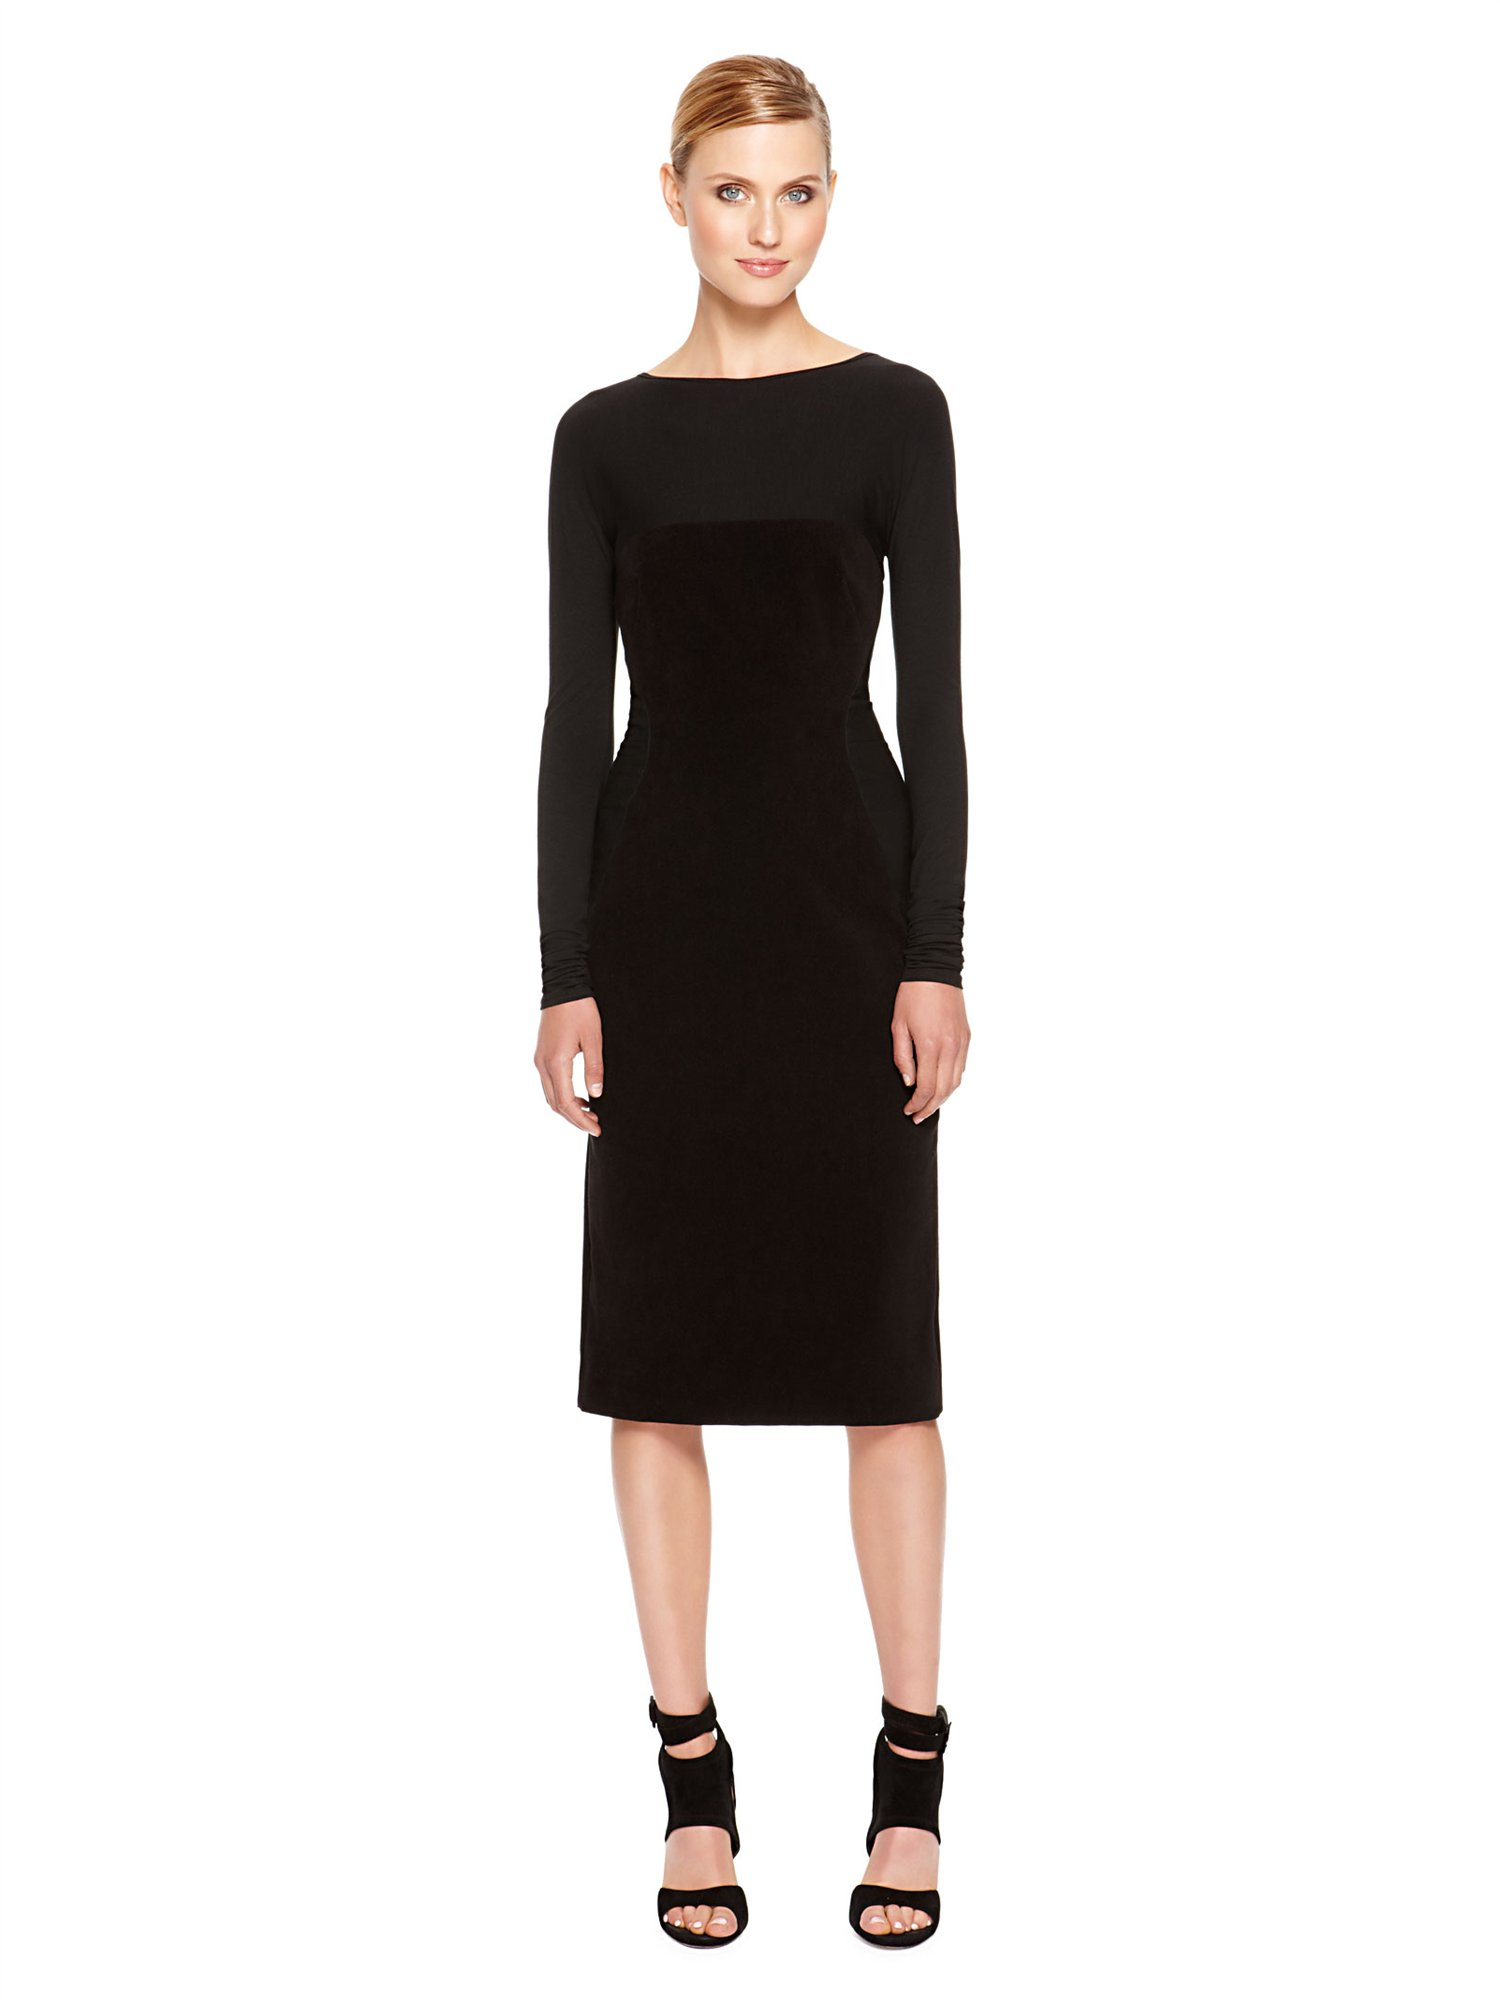 Shop long sleeves sheer dress at Neiman Marcus, where you will find free shipping on the latest in fashion from top designers.